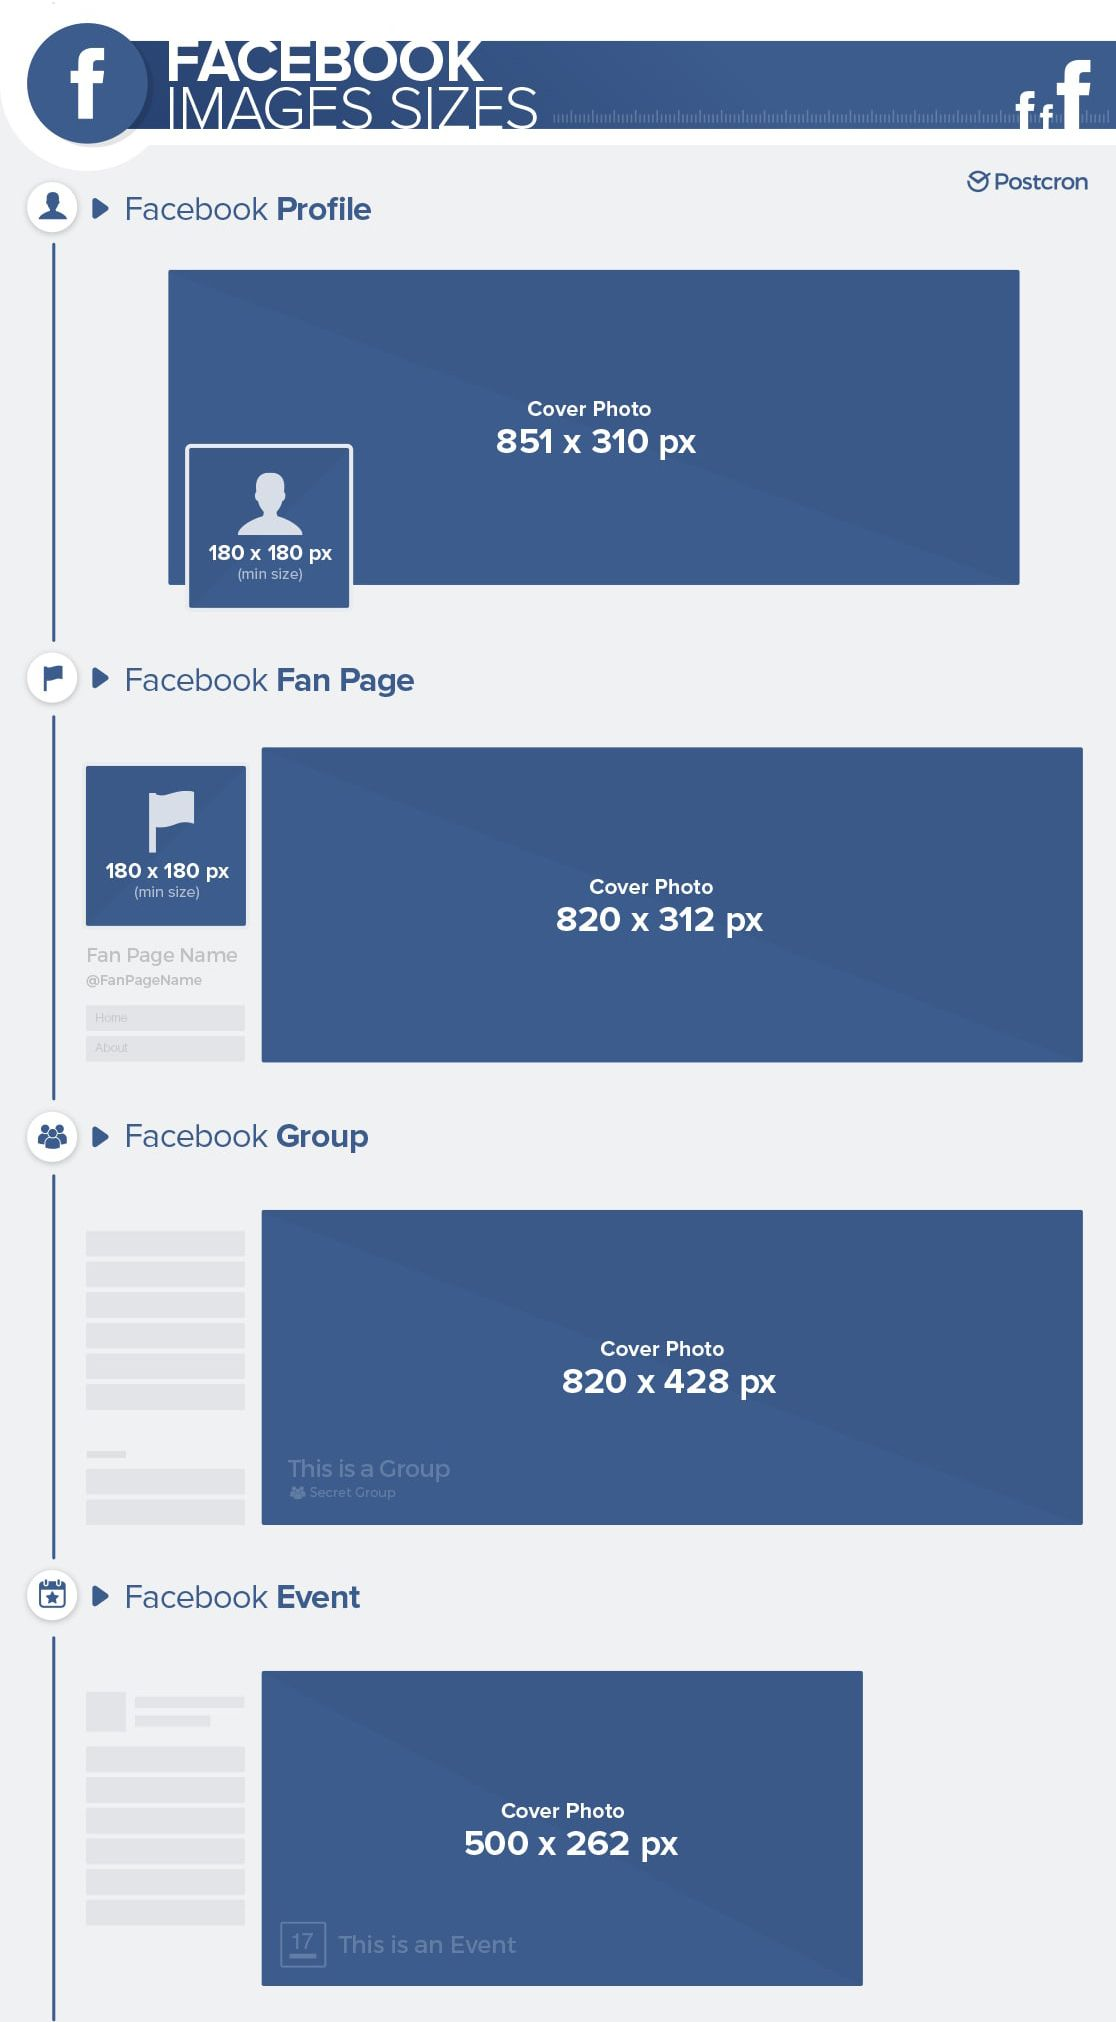 facebook cover image size 2018